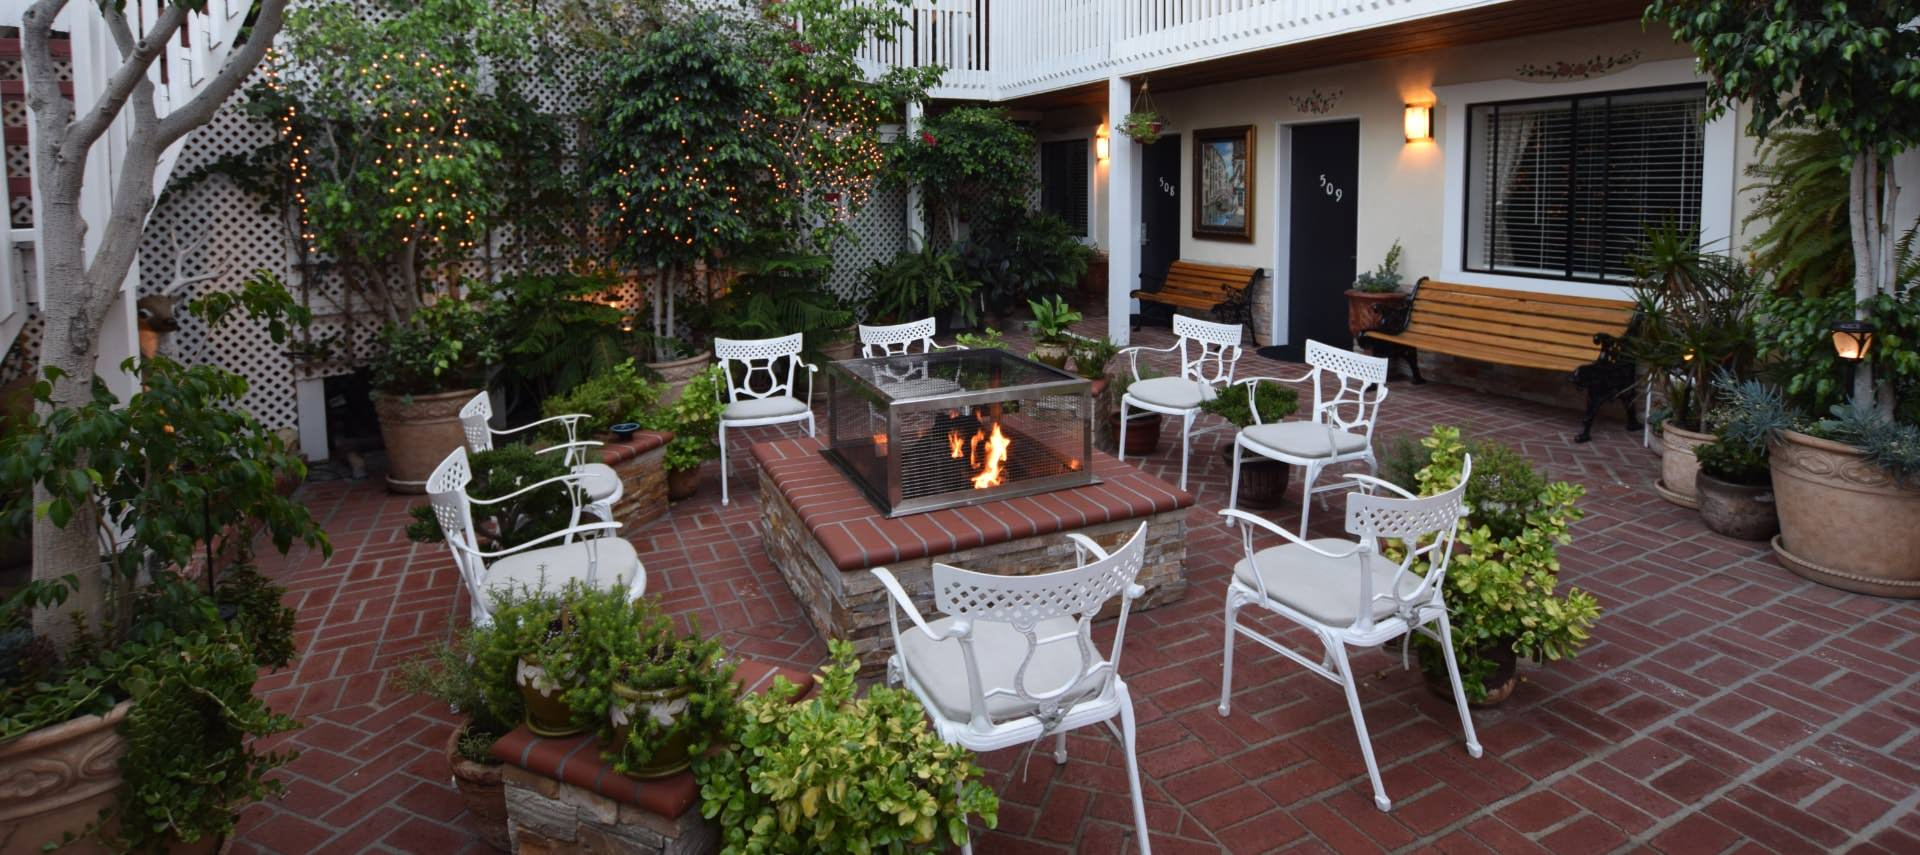 Courtyard patio with red brick and white chairs around a stone fire pit with greenery